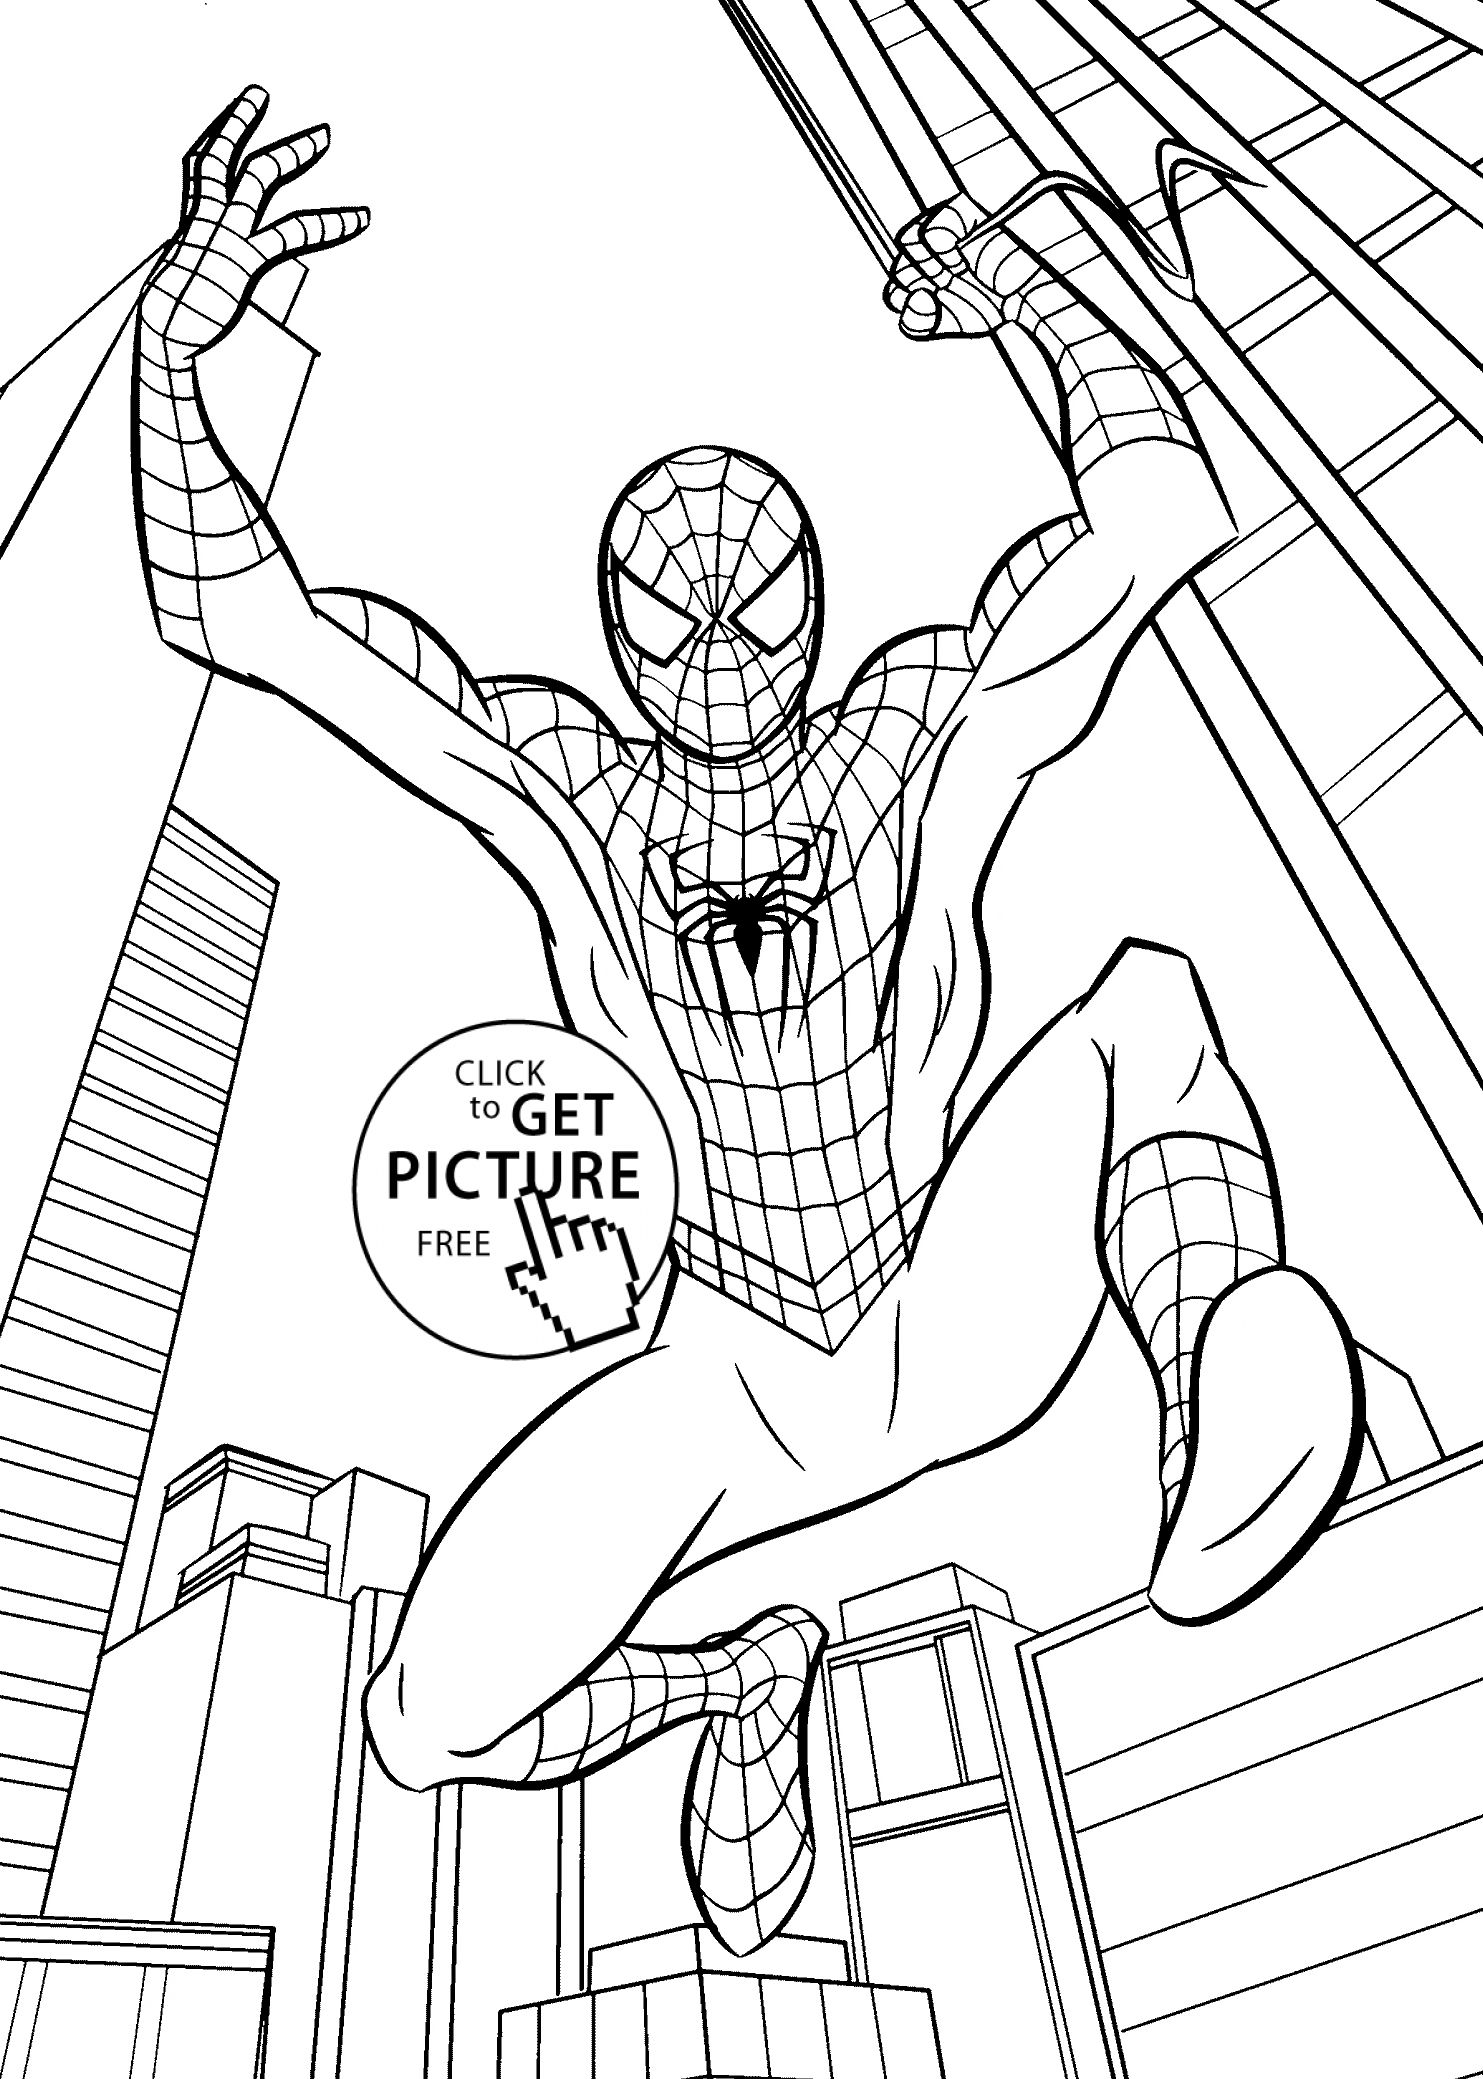 Marvelous Image Of Free Spiderman Coloring Pages Kids Projects